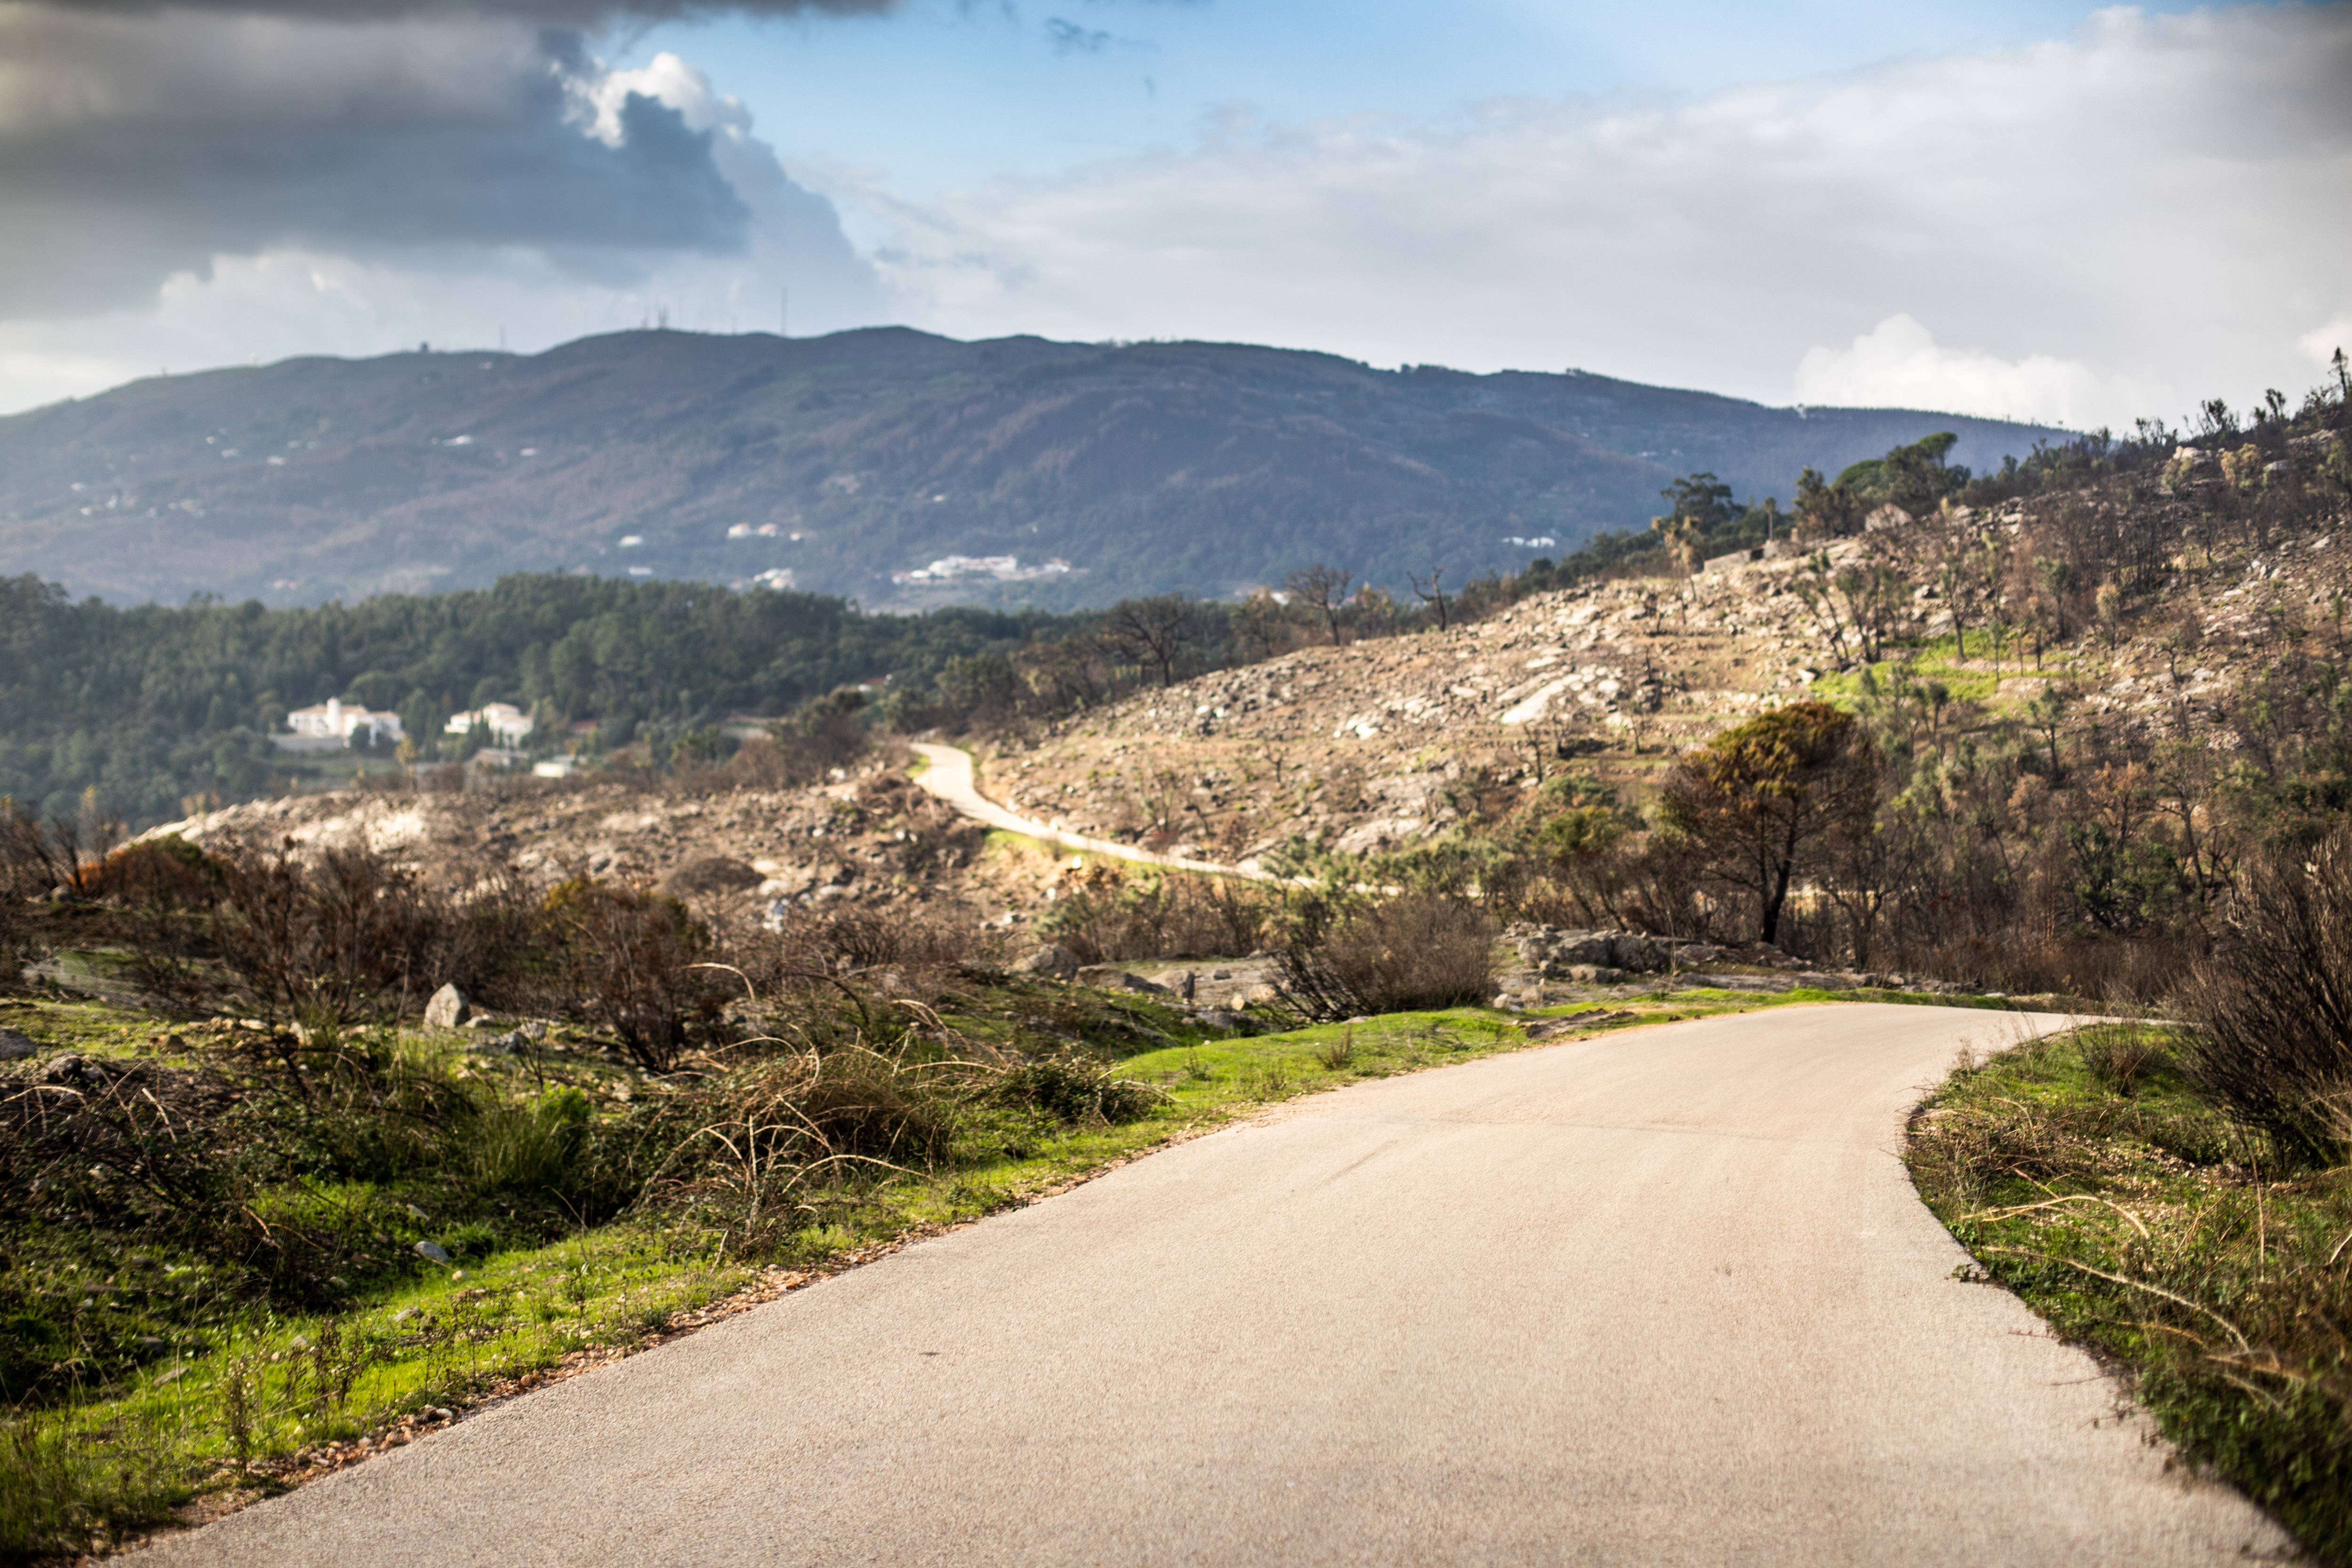 European final - rallye Casinos do Algarve: new experience at challenging distance